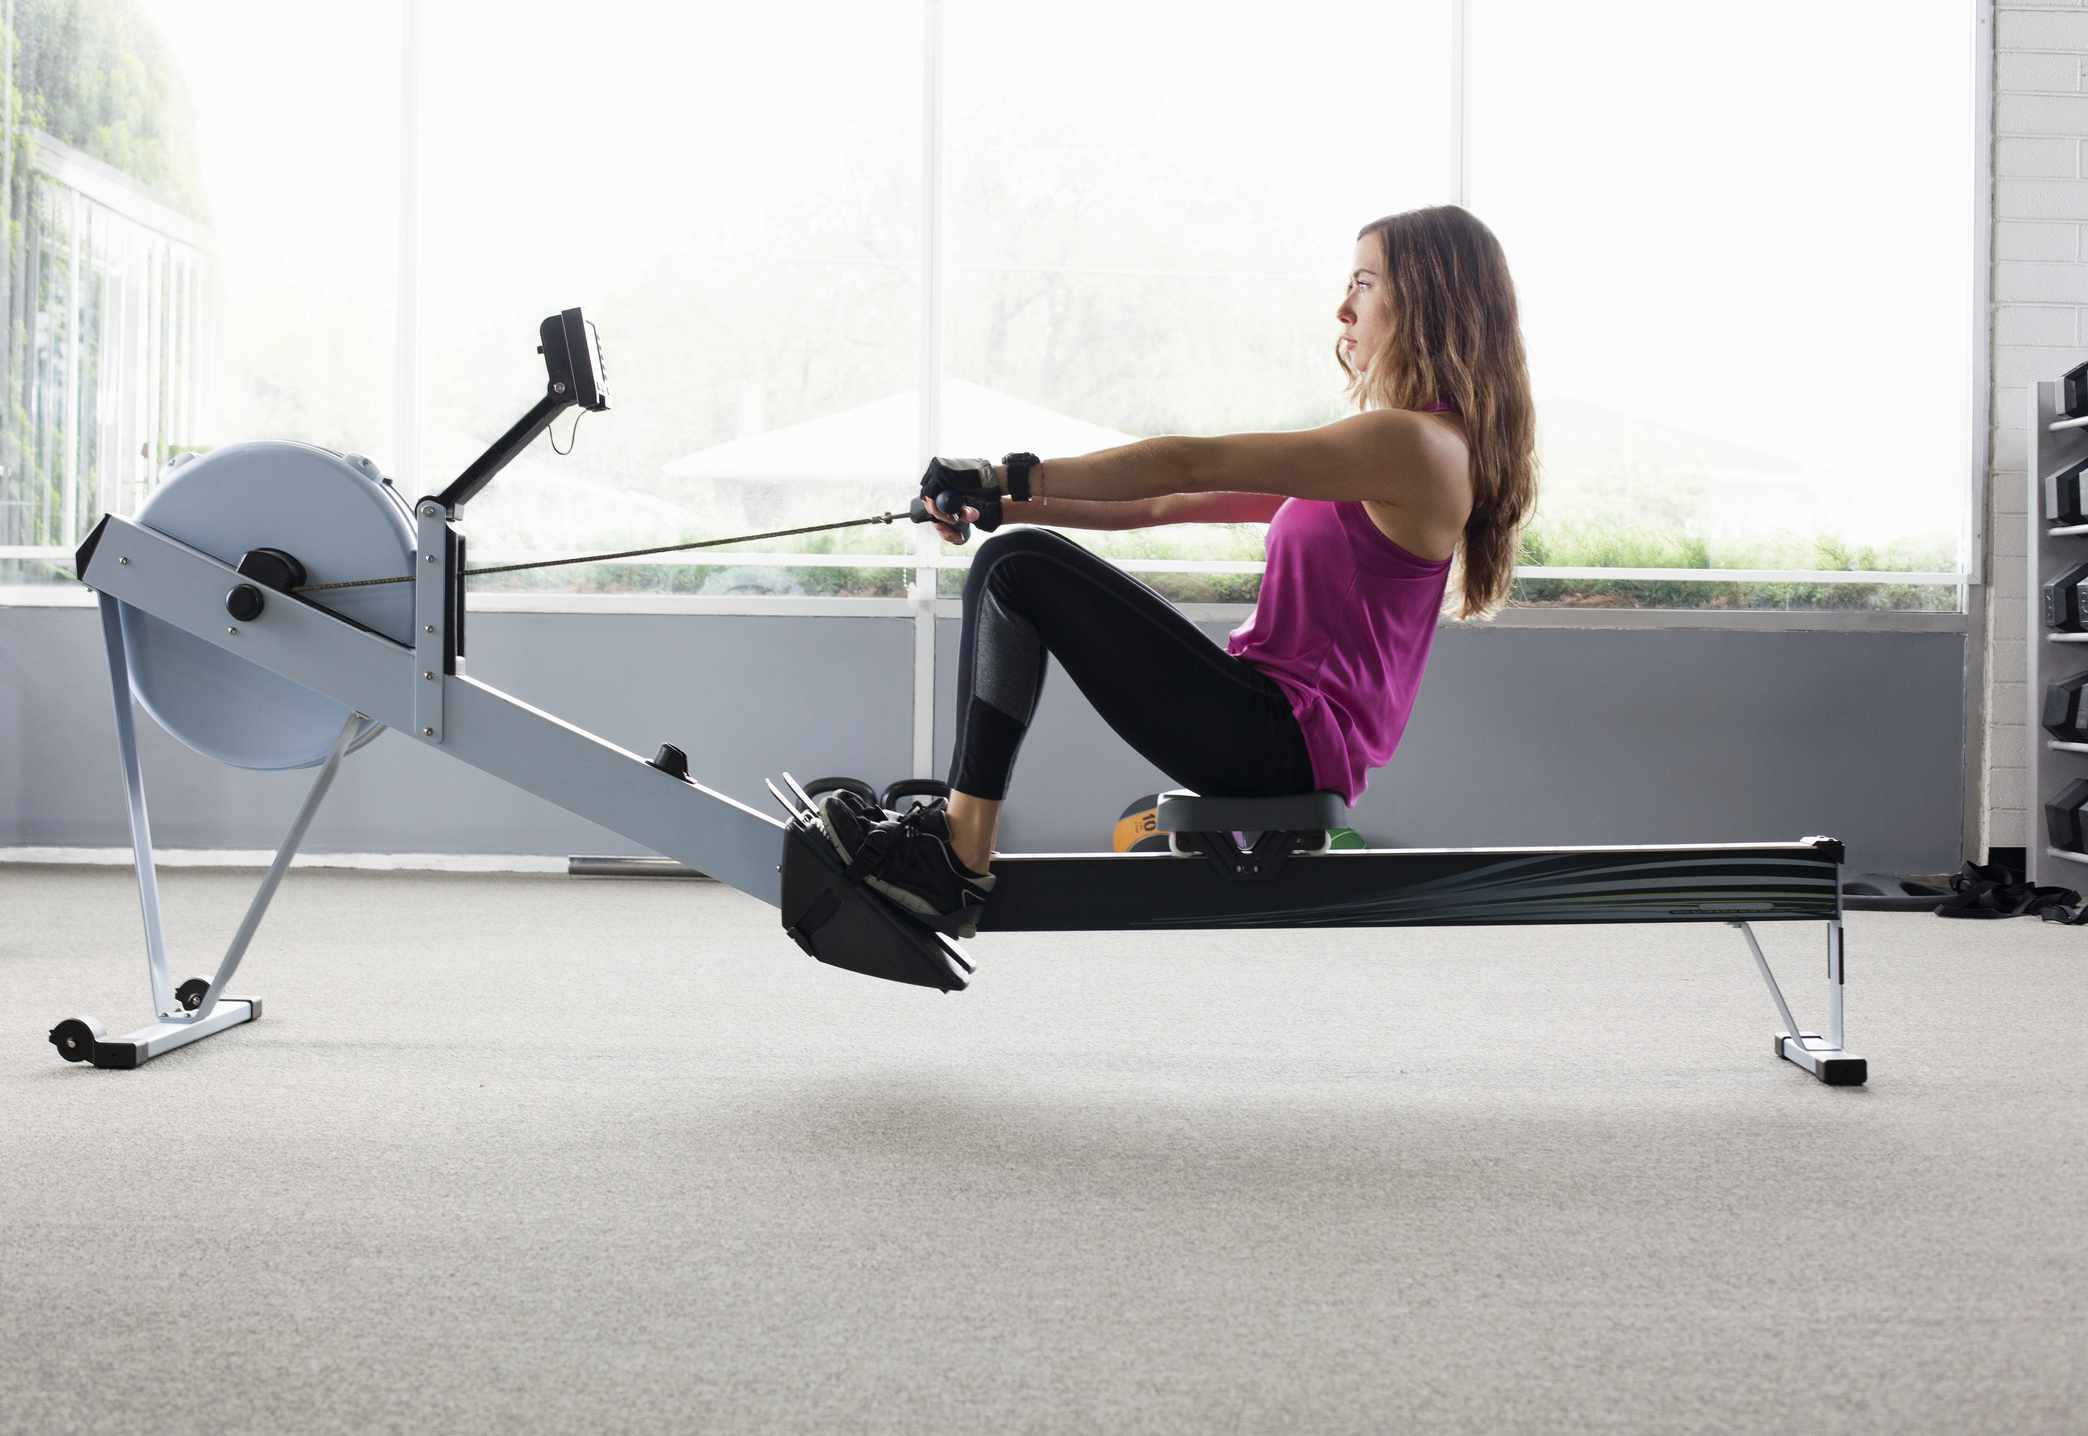 3 Rowing Workouts to Mix Up Your Routine